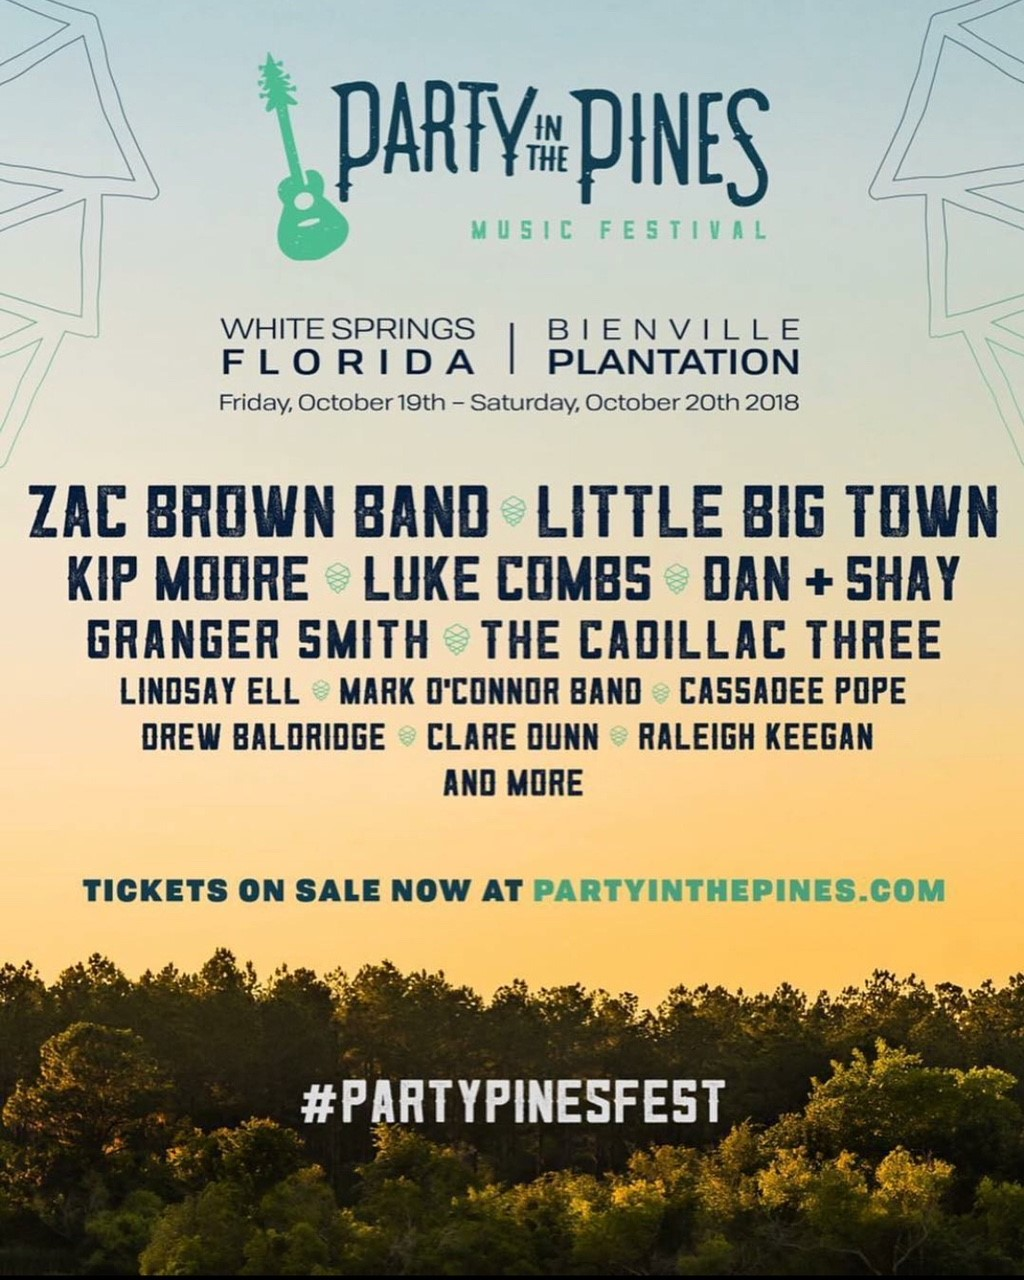 Party in the Pines